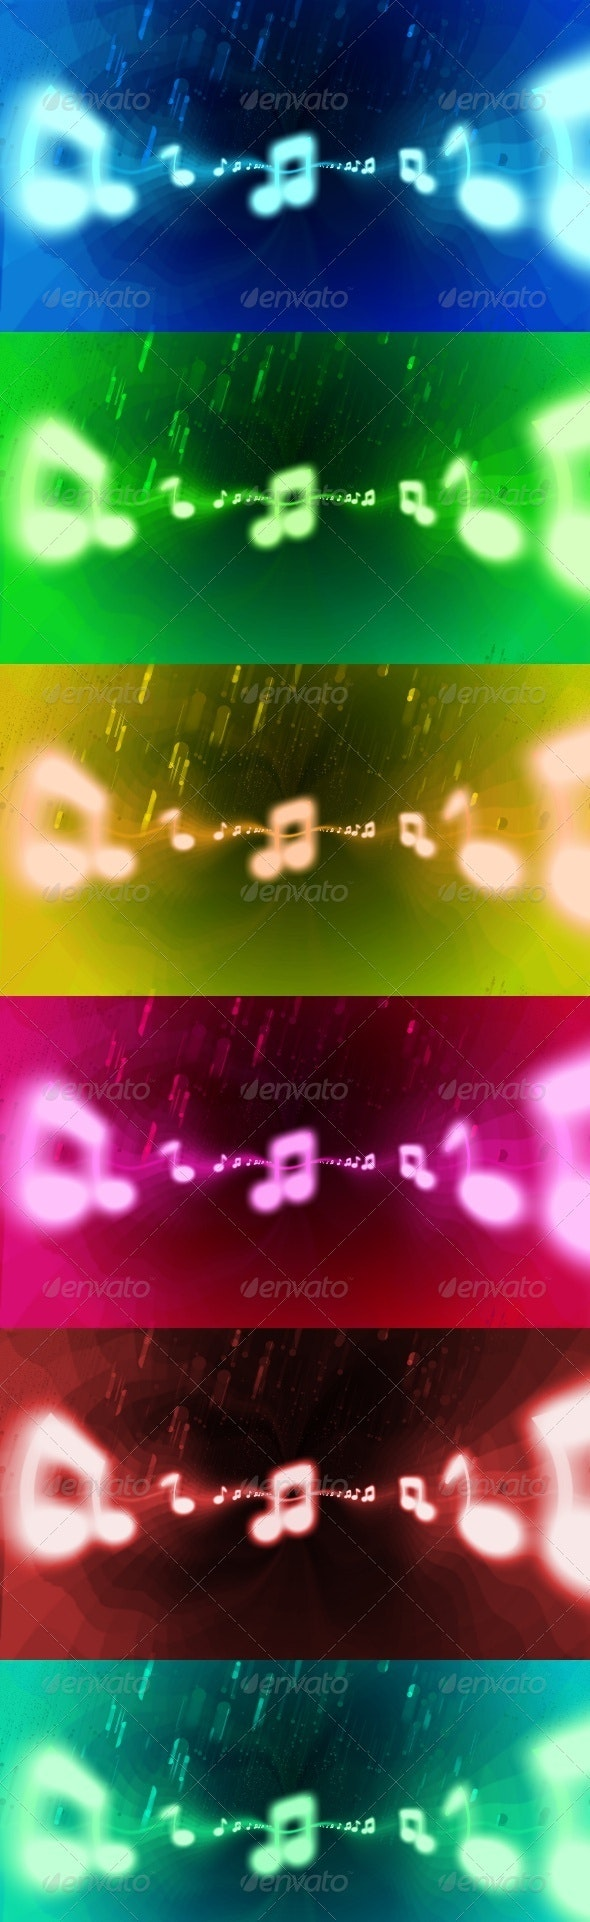 Music Melody 6x Pack - Abstract Backgrounds